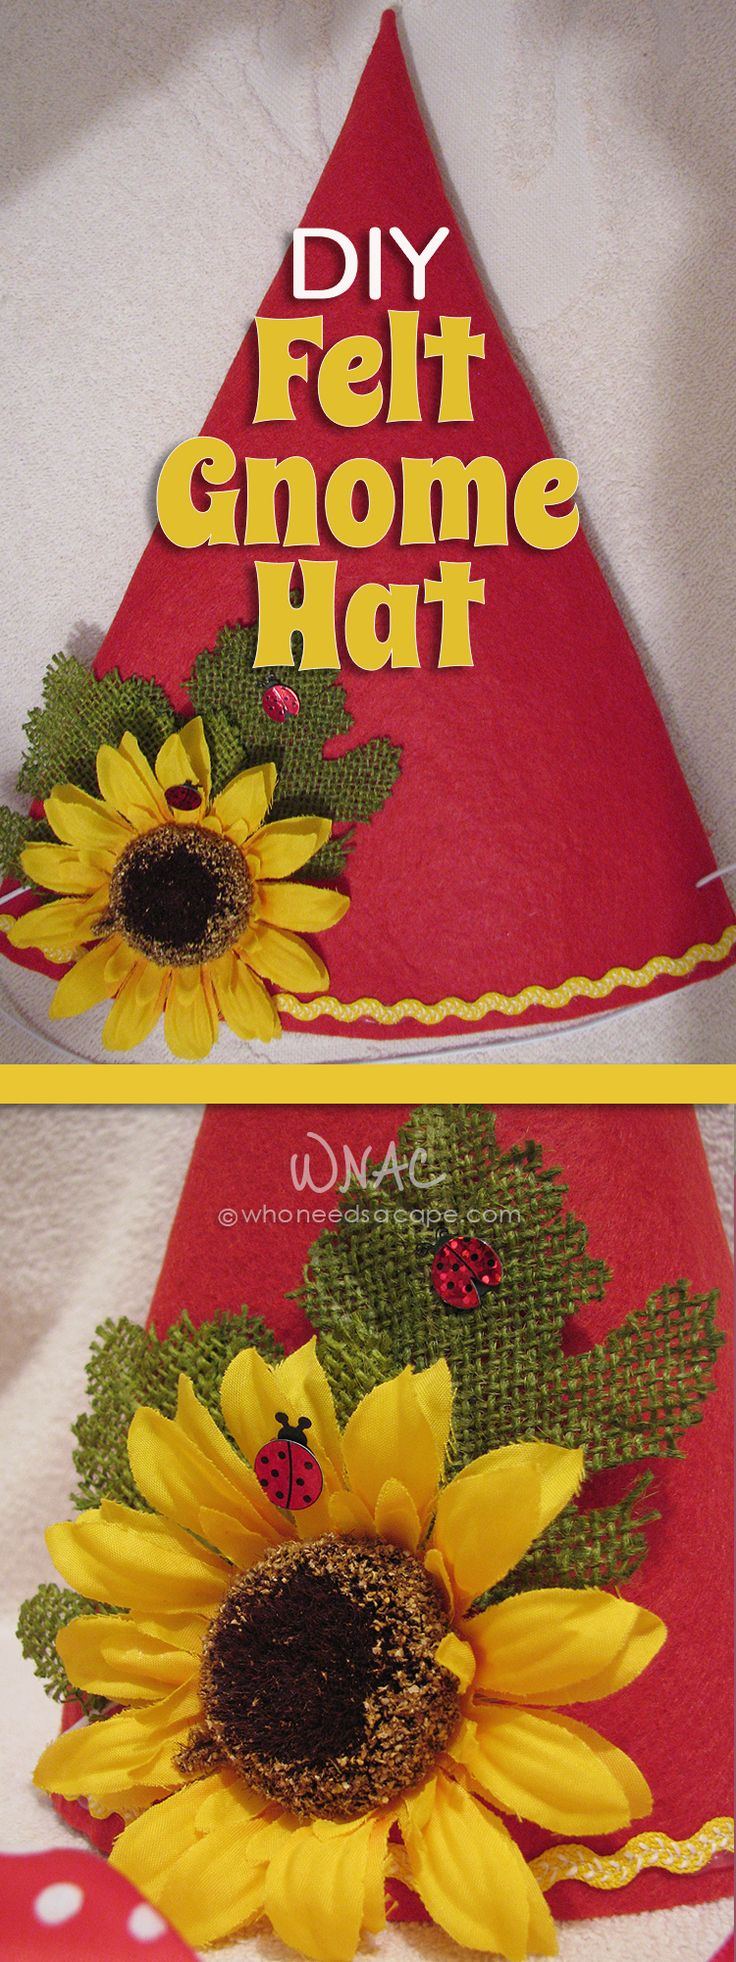 DIY Felt Gnome Hat the most ADORABLE Halloween costume!